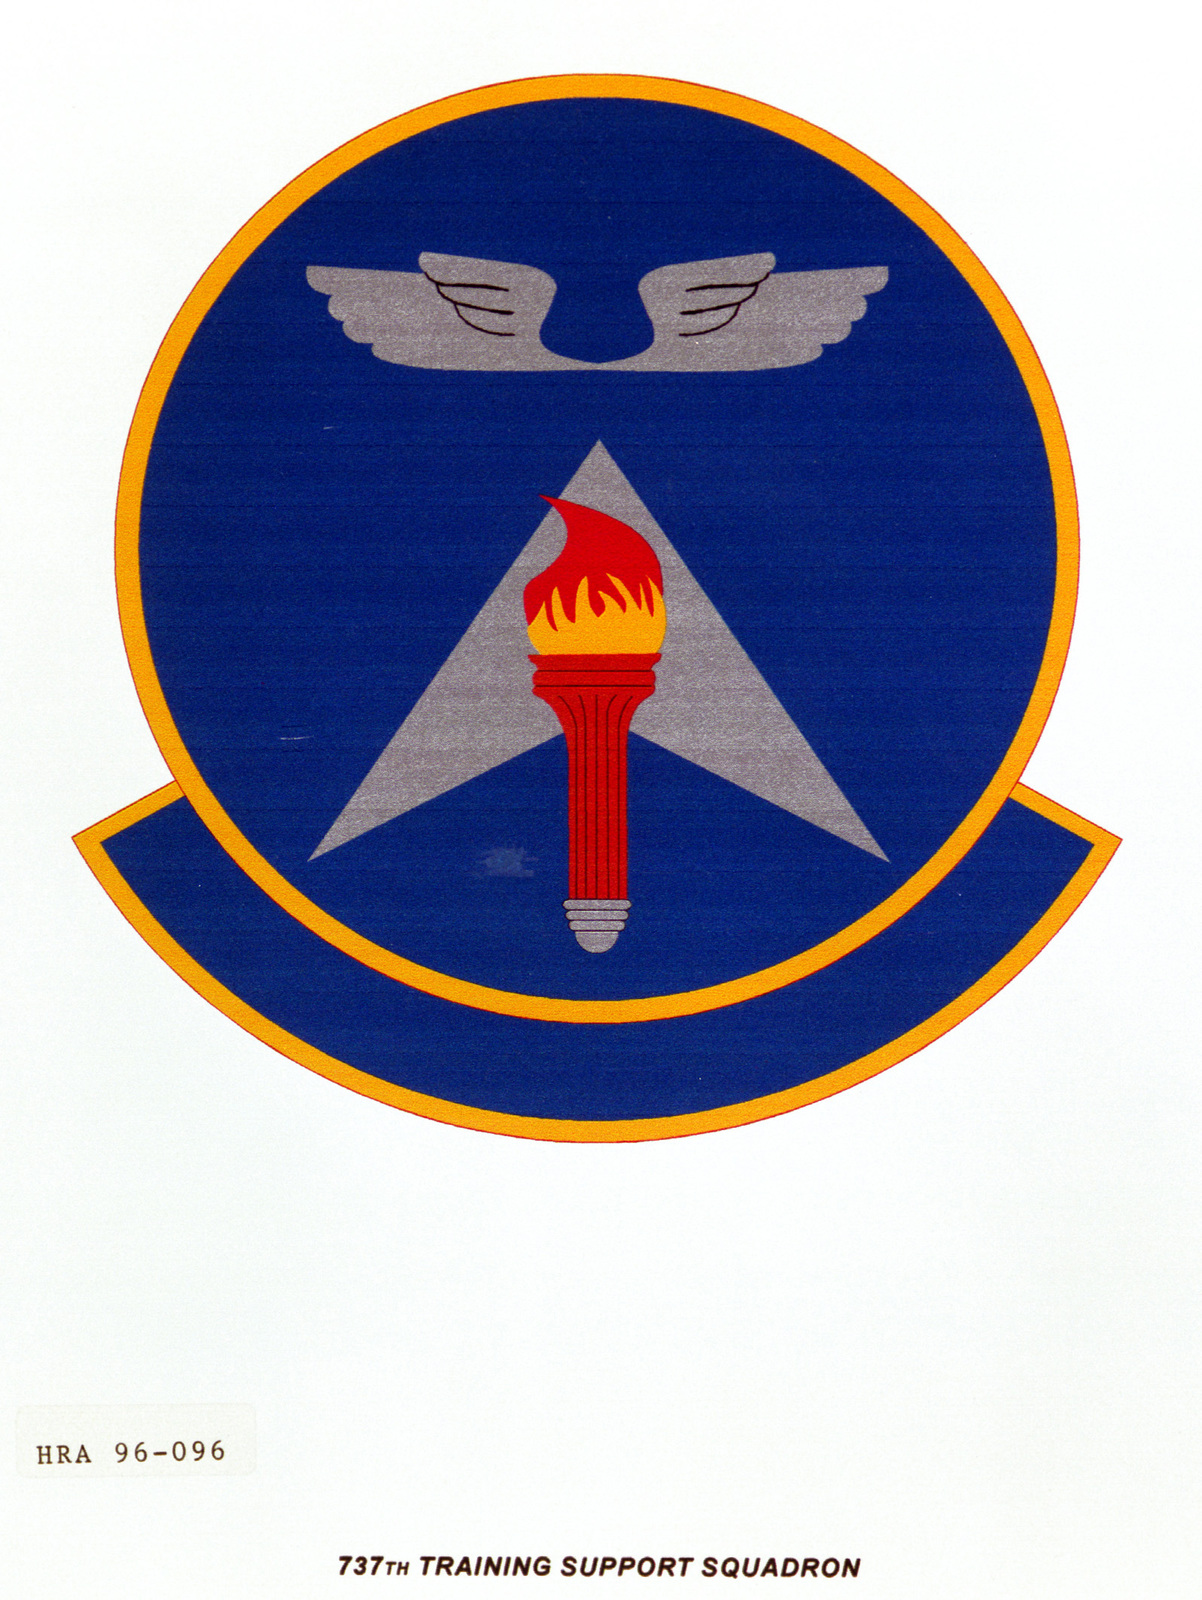 Air Force Organizational Emblem. 737th Training Support Squadron Exact Date Shot Unknown